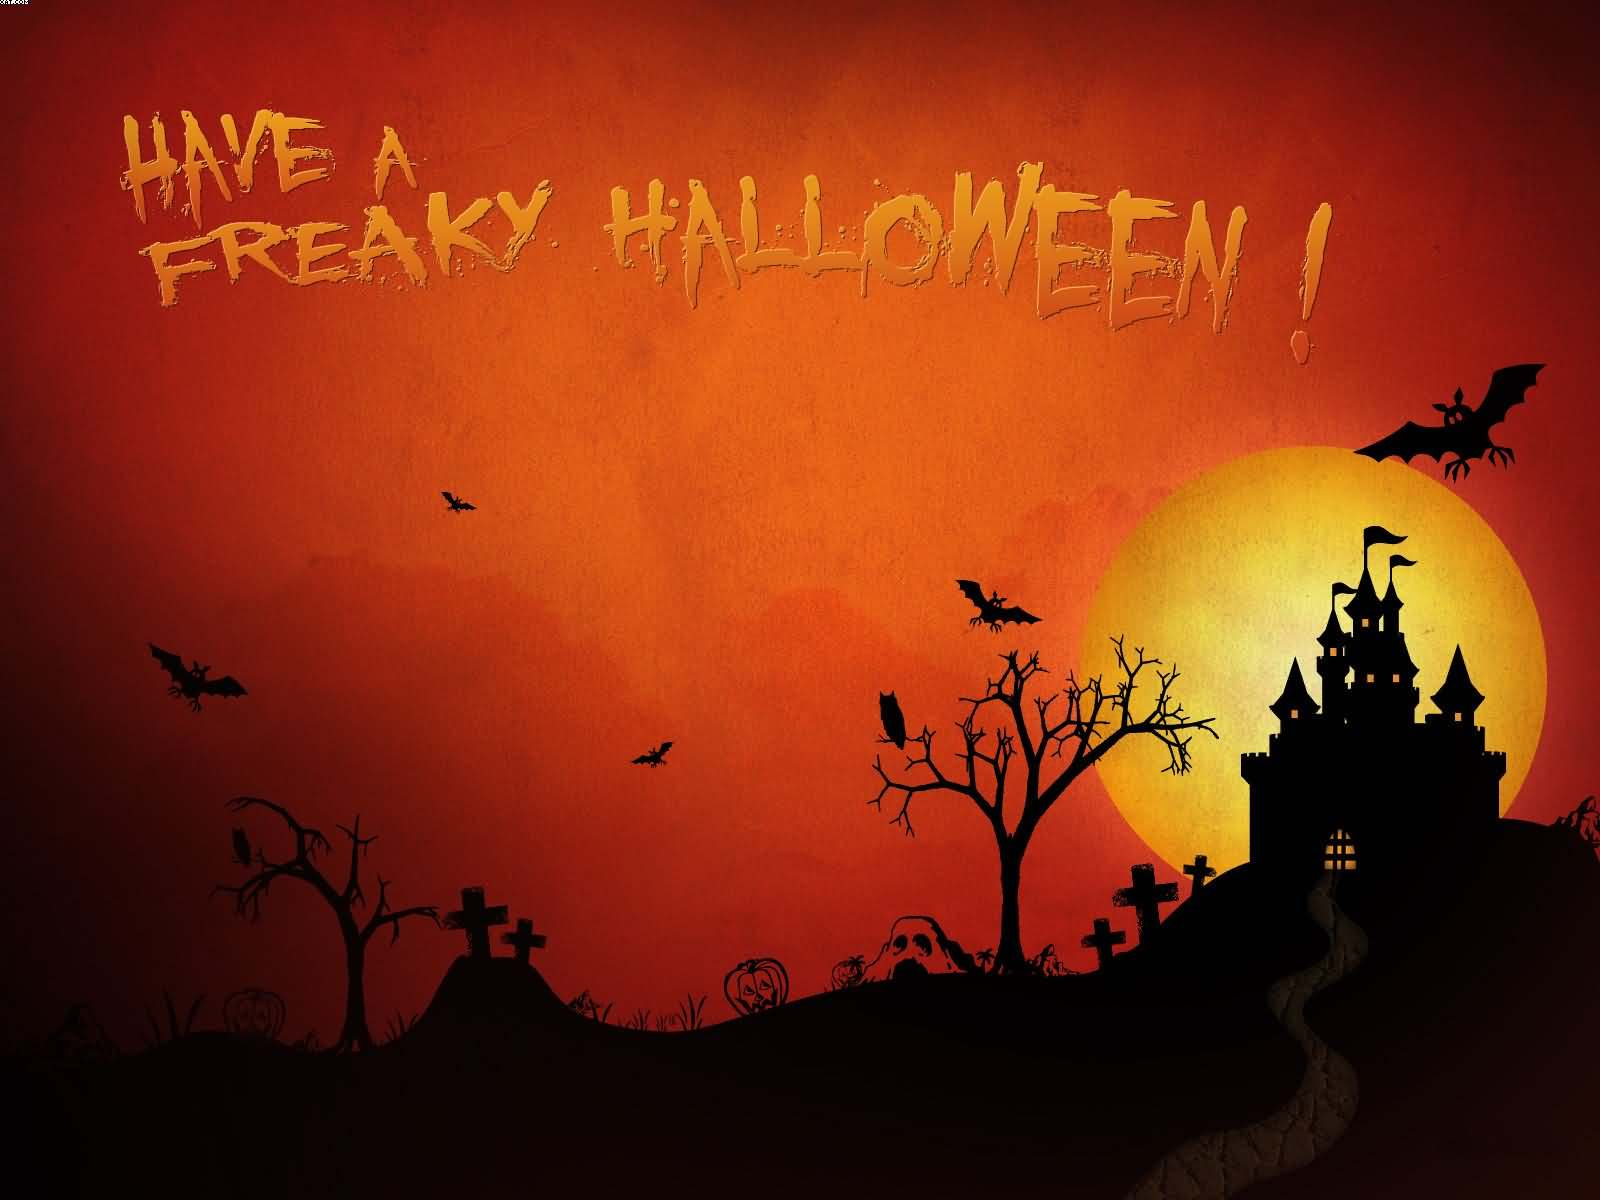 Superior Have A Freaky Halloween Wishes Wallpaper